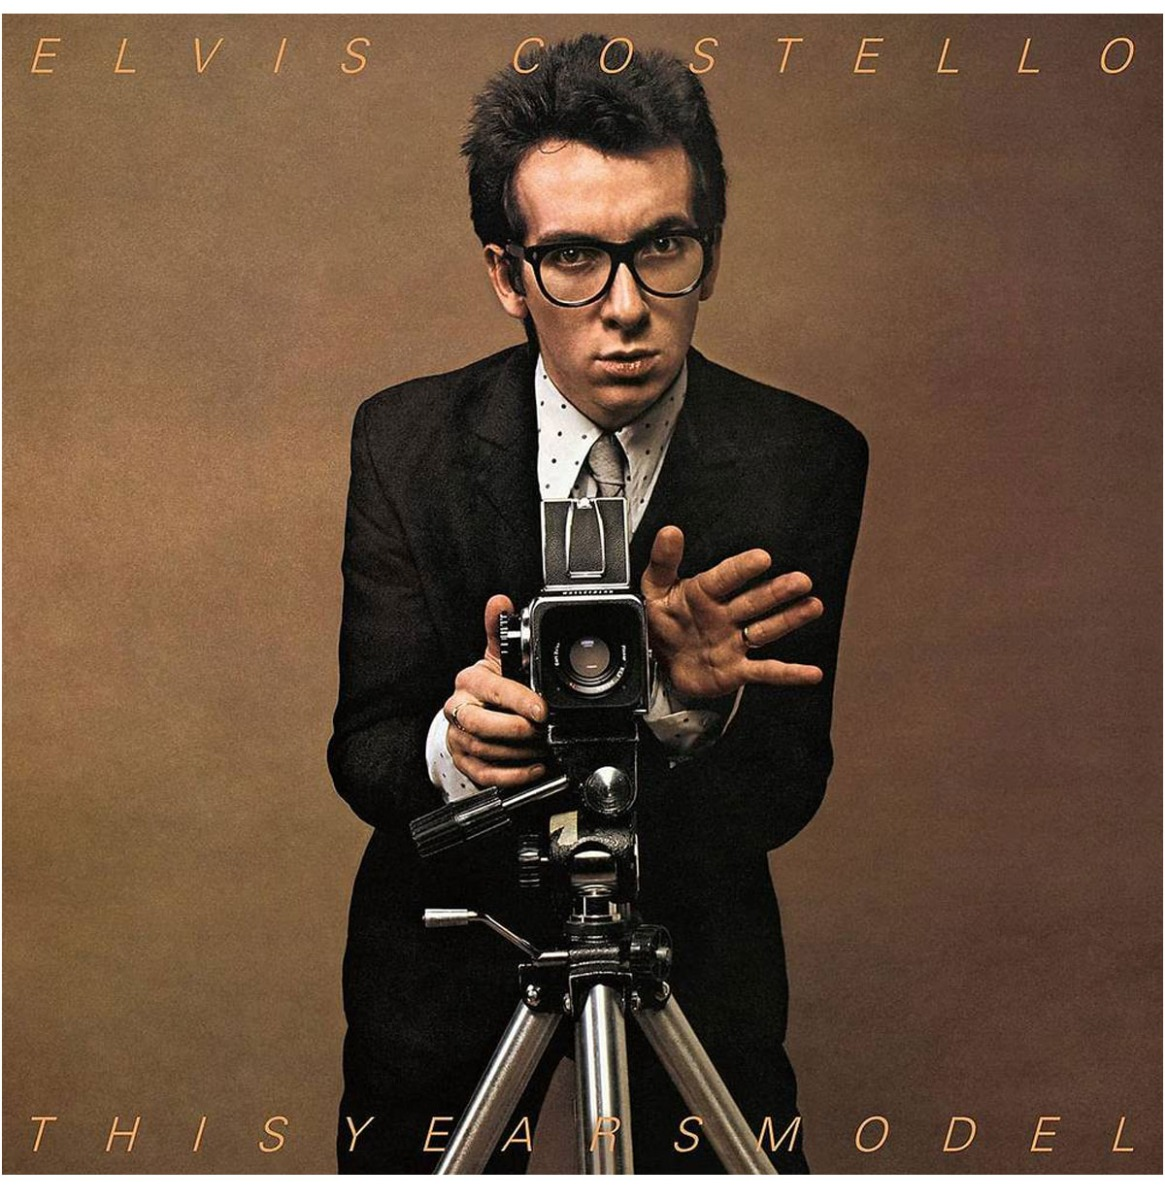 Elvis Costello & The Attractions - This Years Model LP